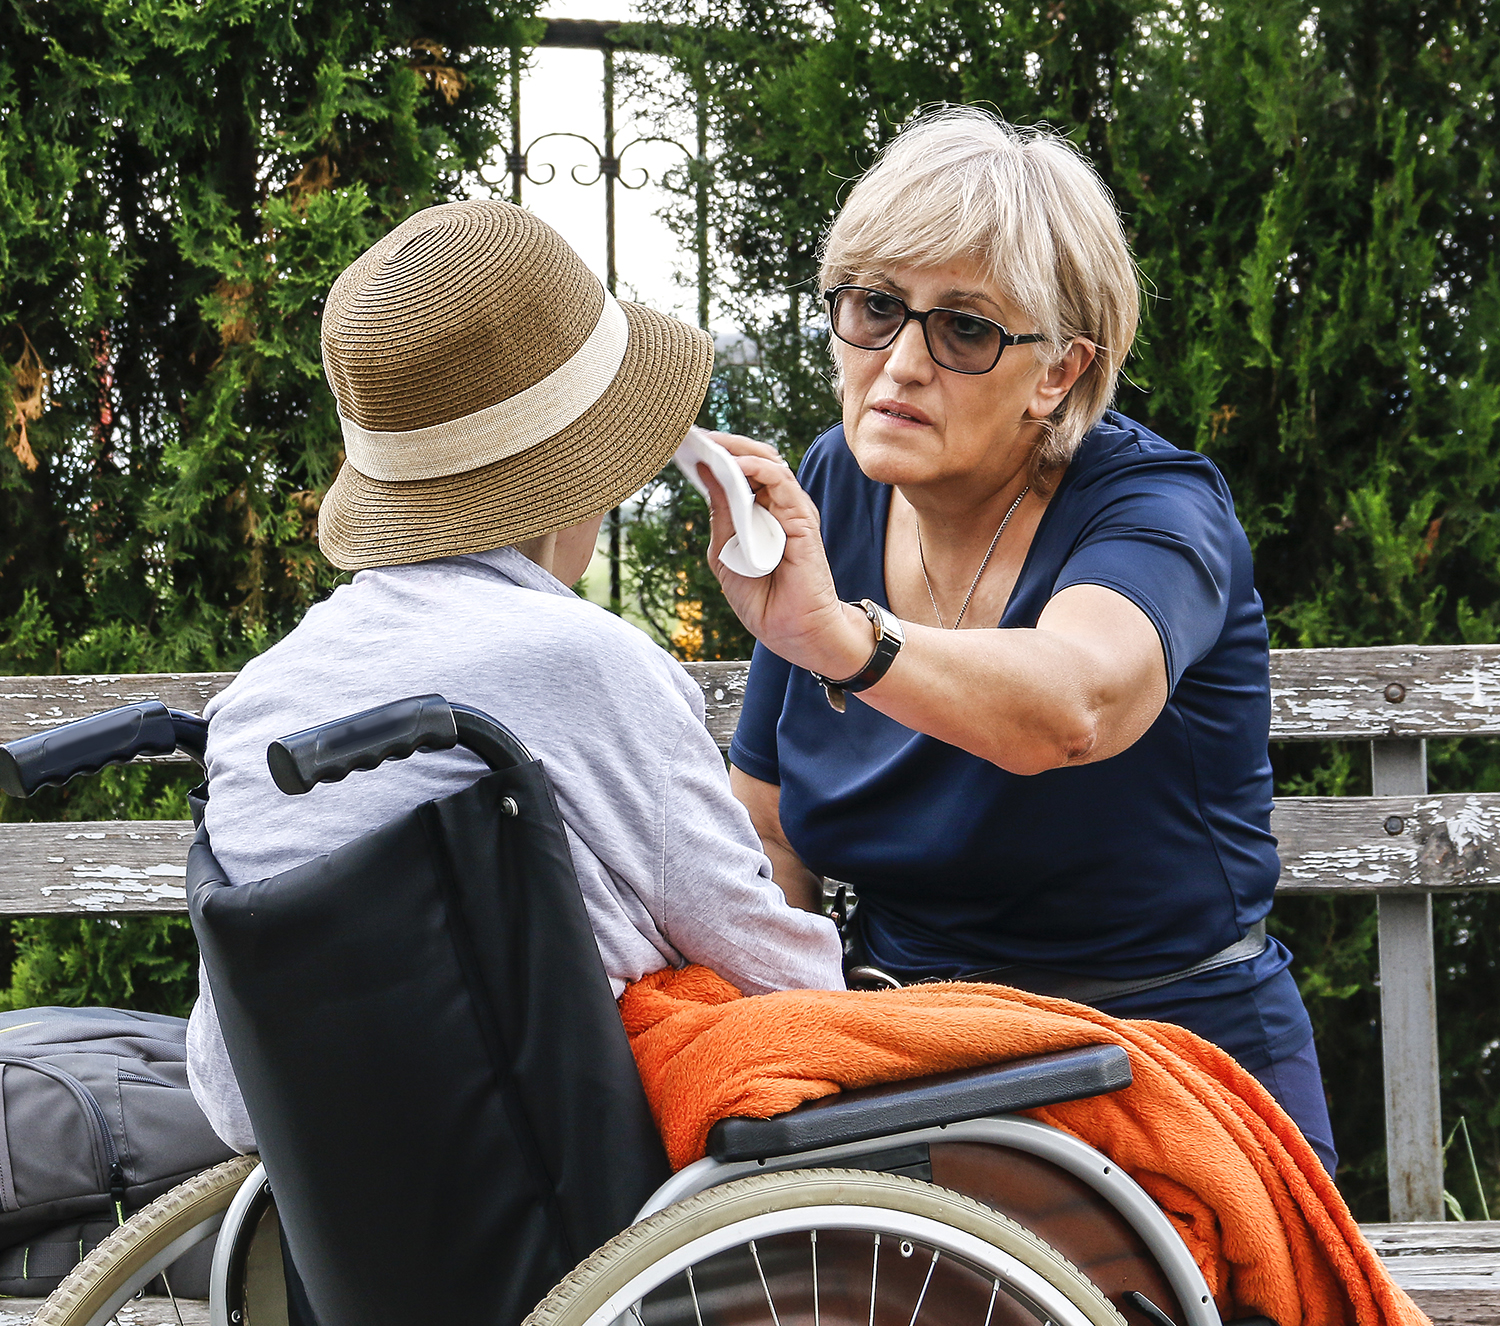 Being an Alzheimer's Caregiver is Hard